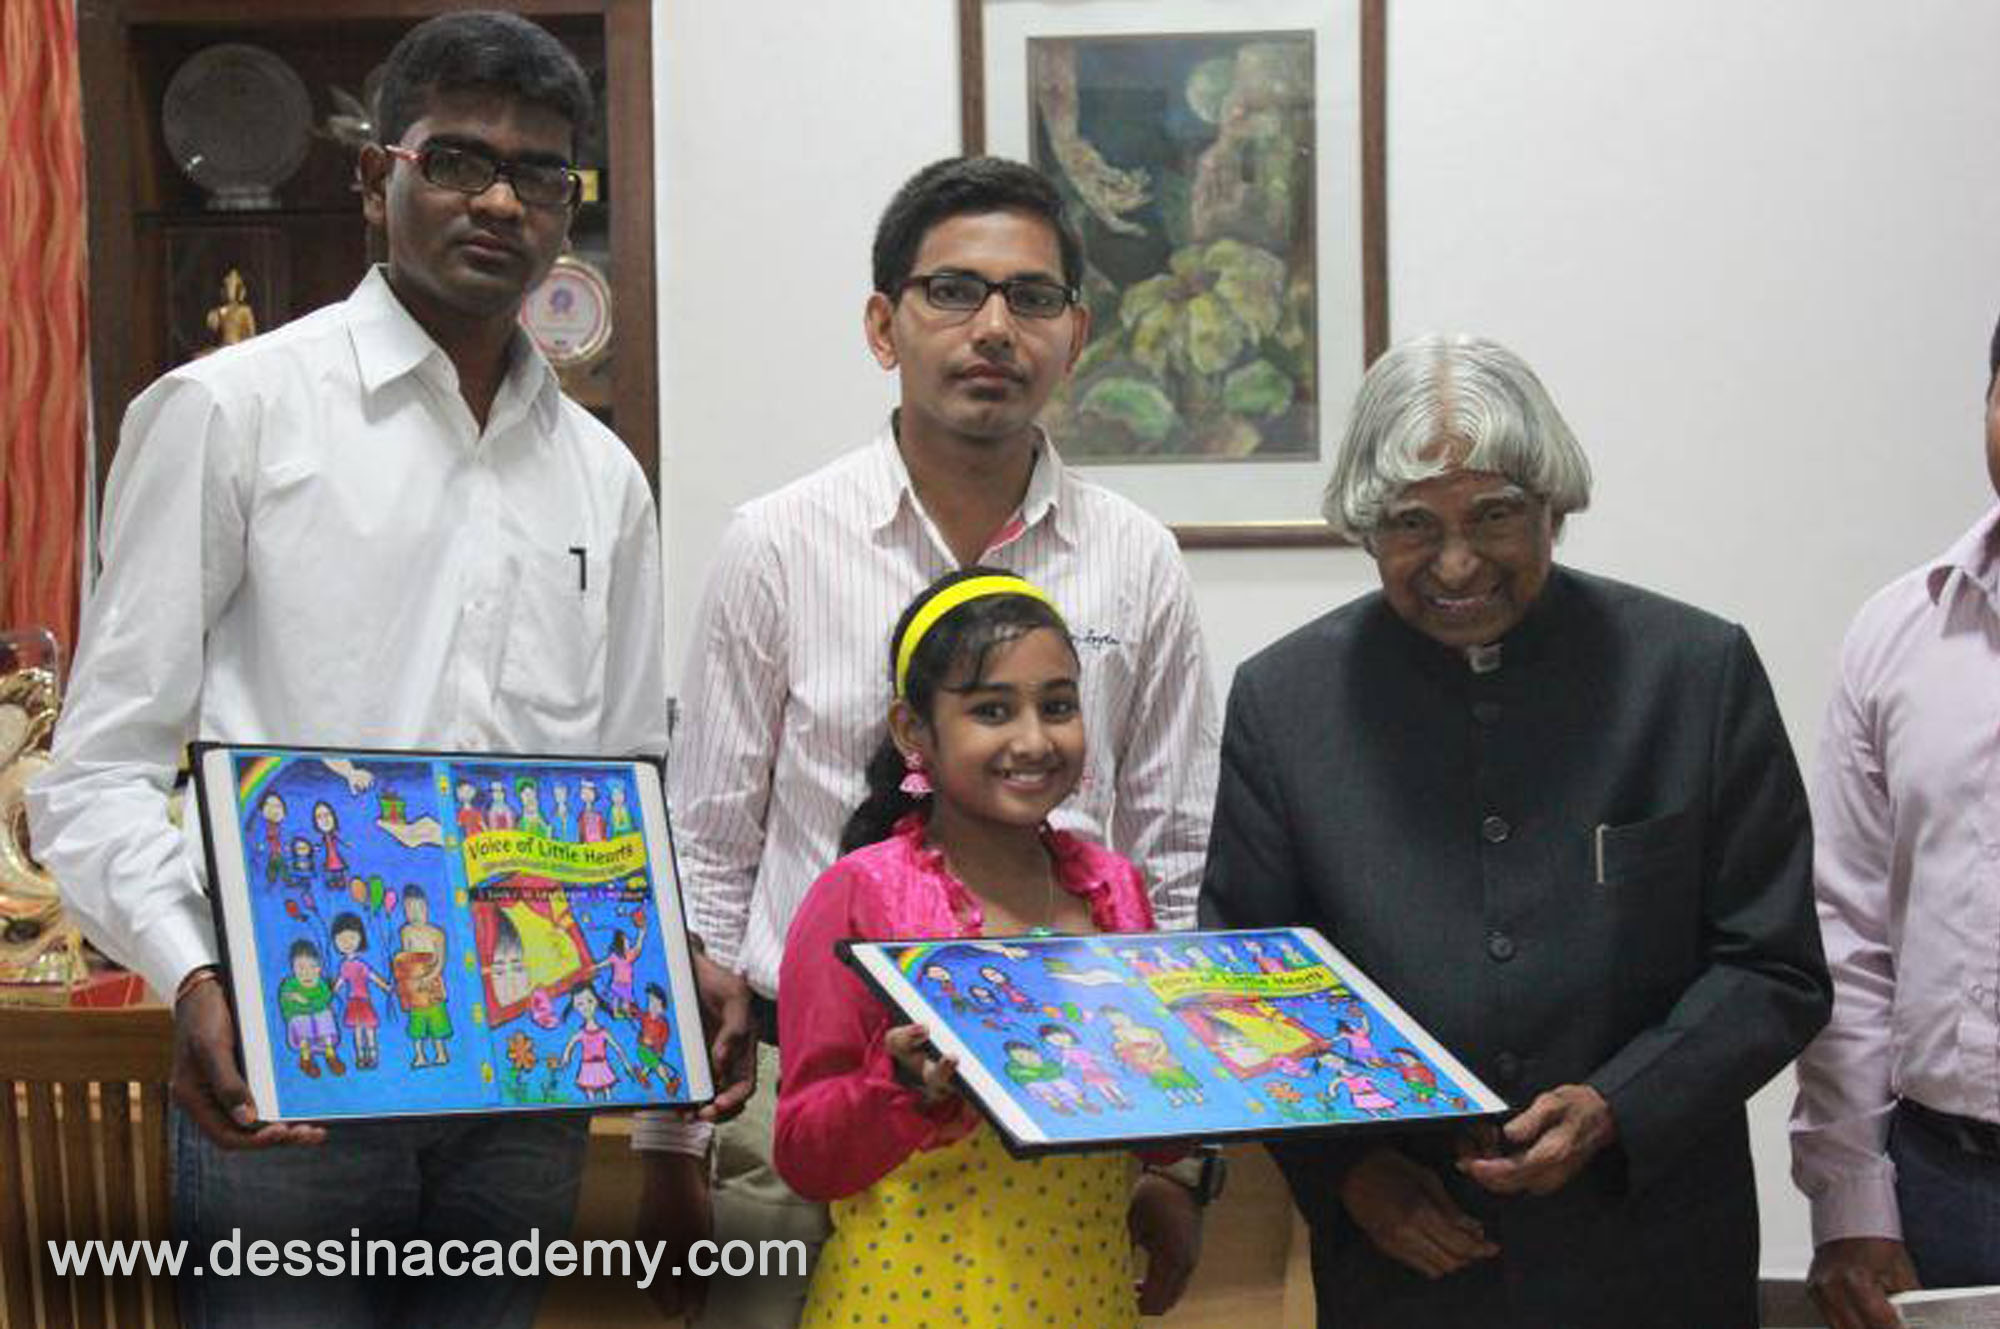 Dessin School of Arts Students Acheivement 1, KGK Play School, Portrait Drawing classes For Kids in Aminjikarai